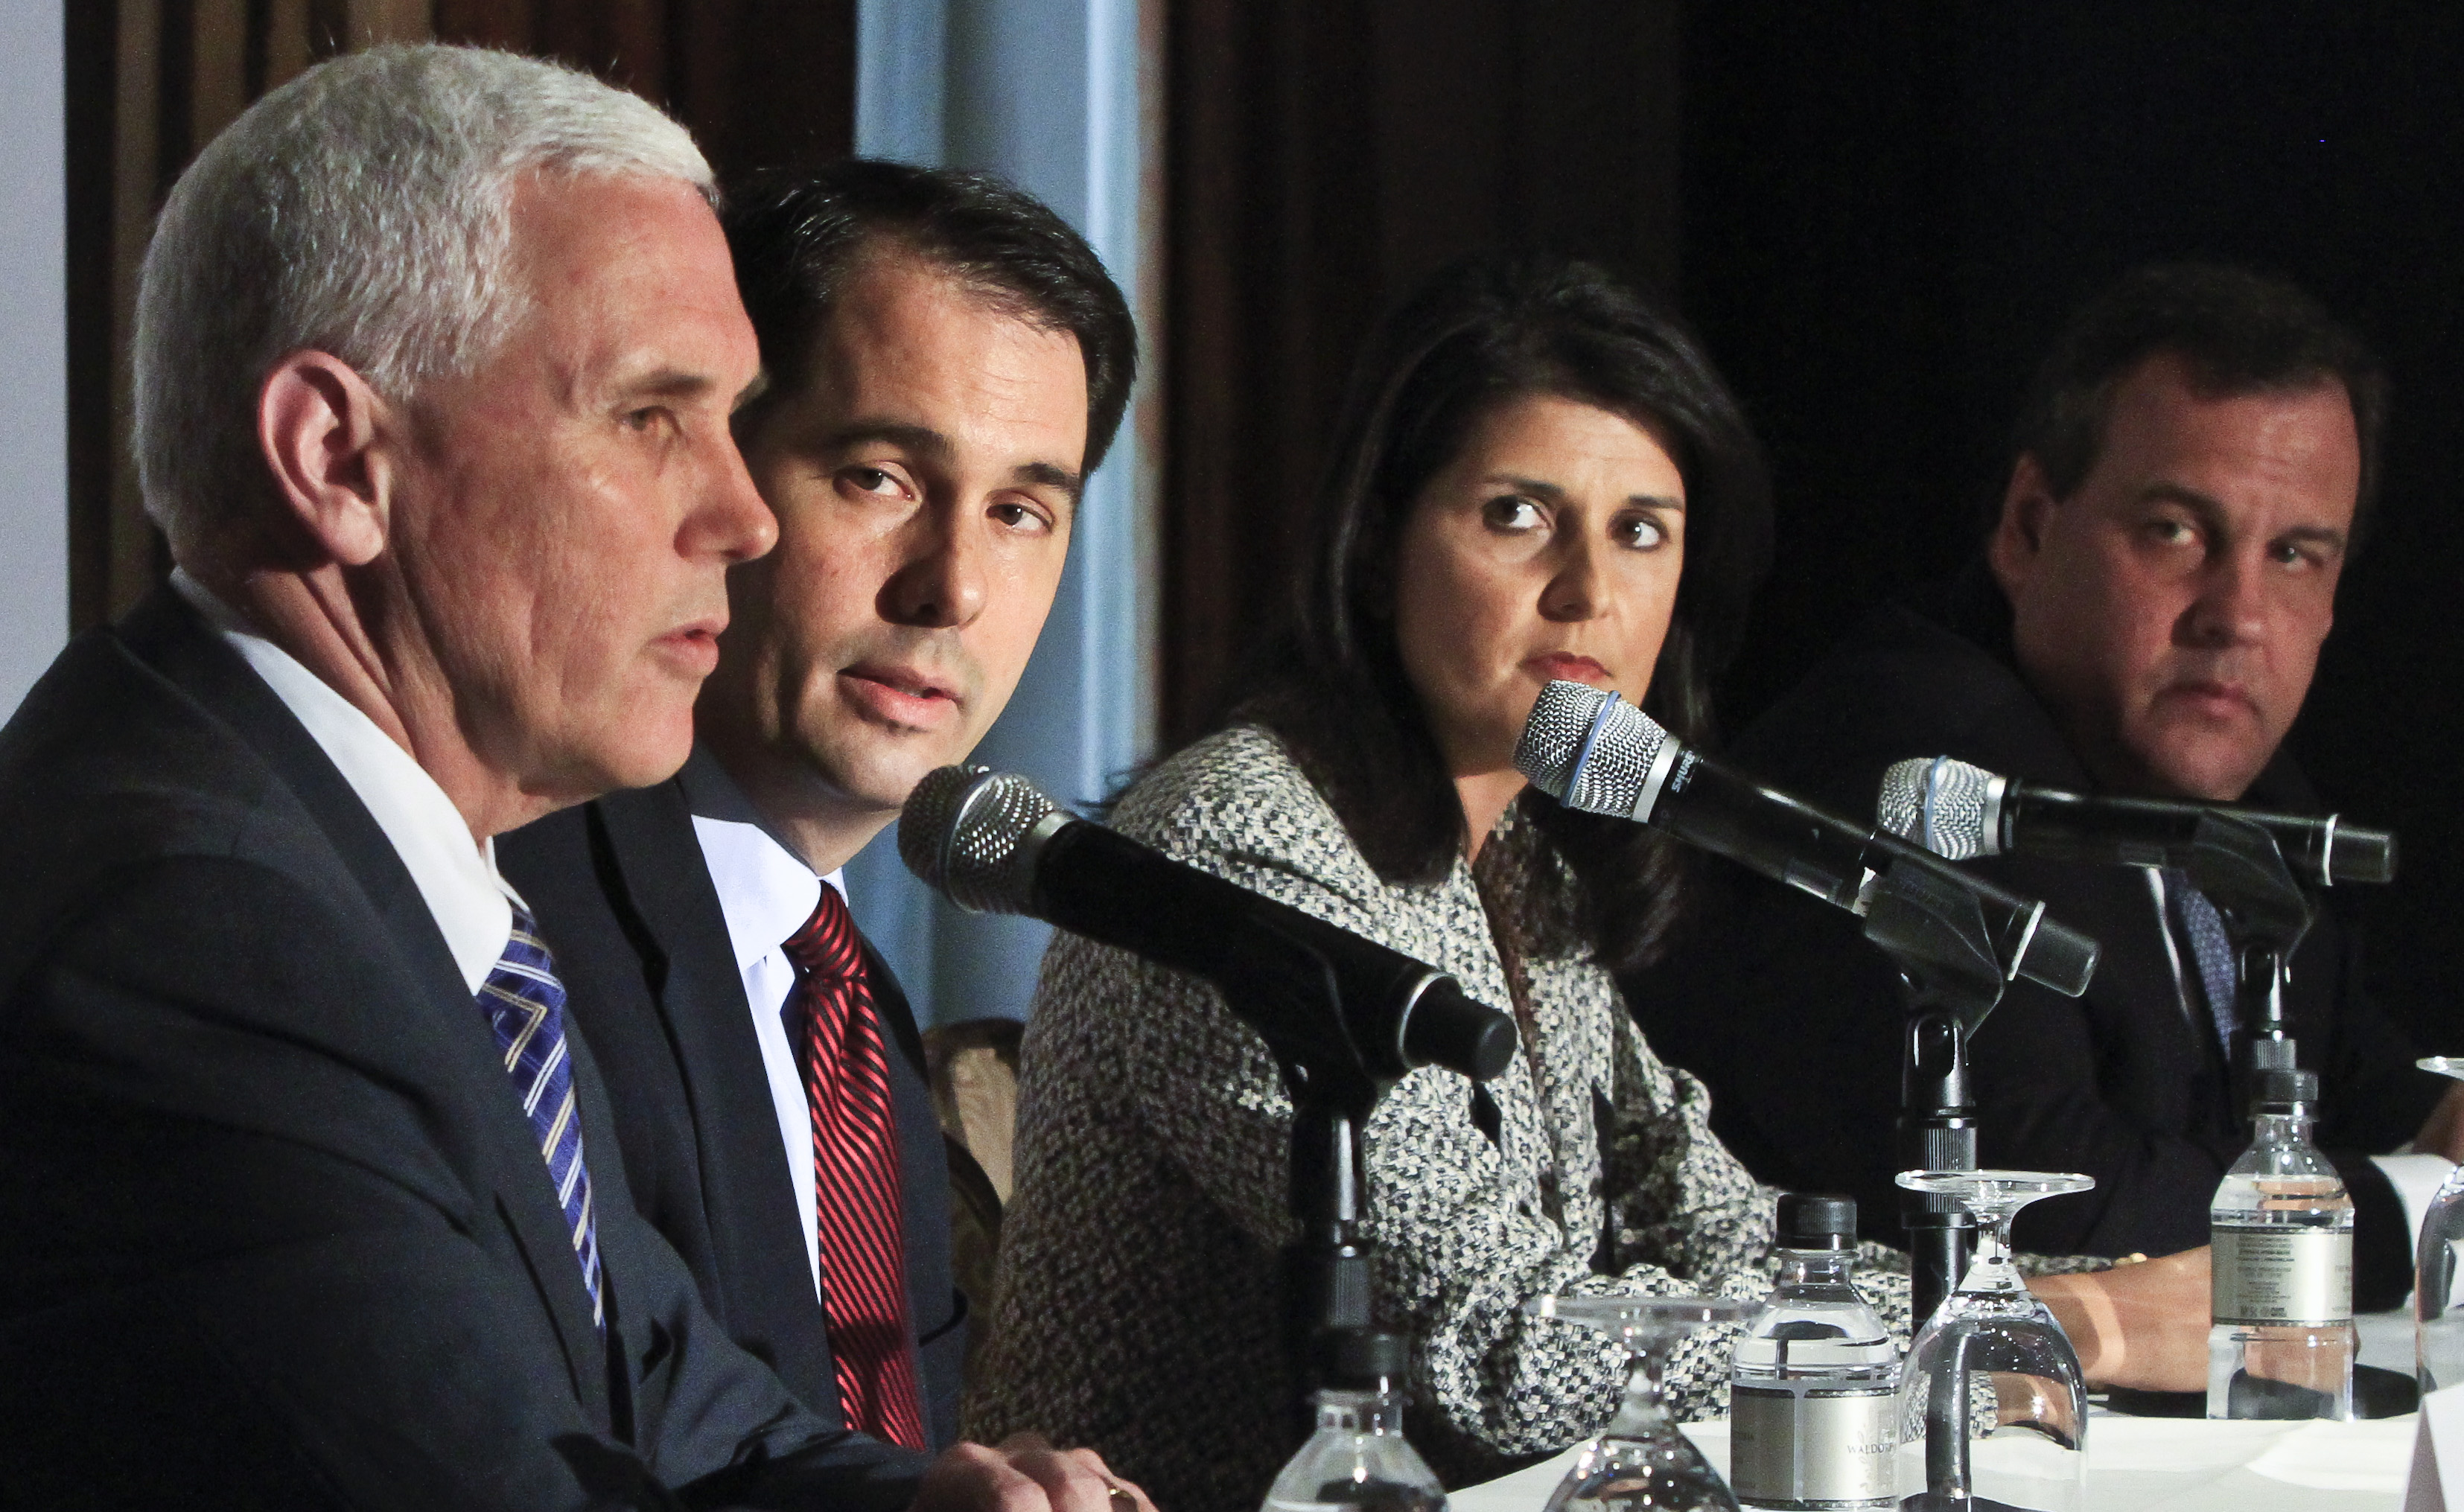 Wisconsin Gov. Scott Walker,  South Carolina Gov. Nikki R. Haley and New Jersey Gov. Chris Christie listen as Indiana Gov. Mike Pence speaks during a press conference at the Republican Governors Association's quarterly meeting on Wednesday May 21, 2014 in New York.